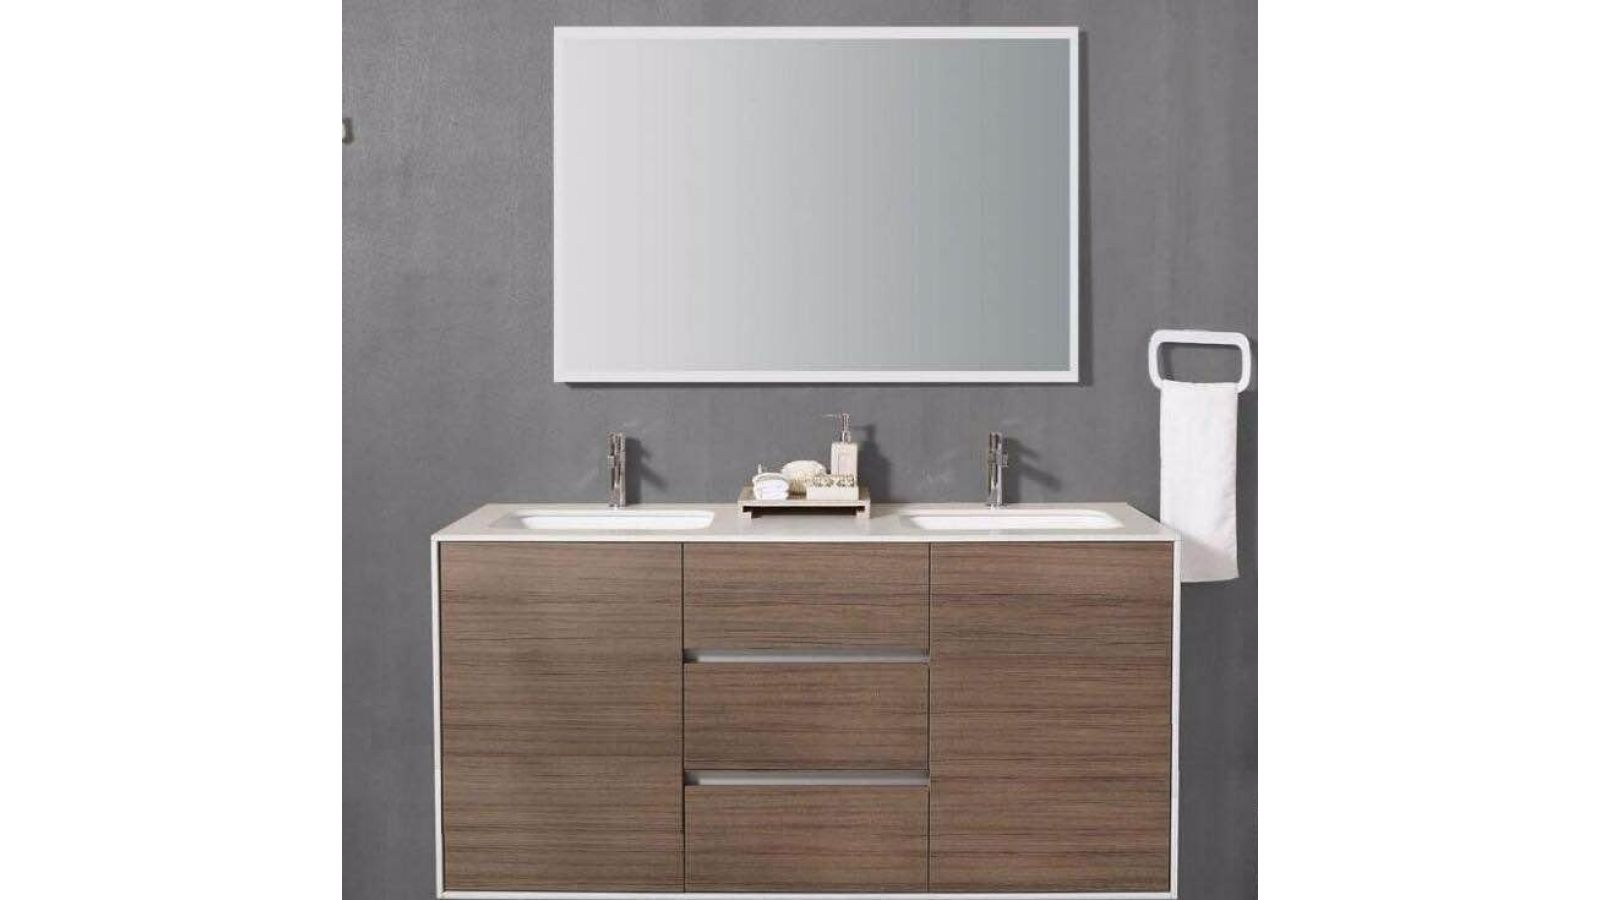 Artevit Double Sink Bathroom Vanity